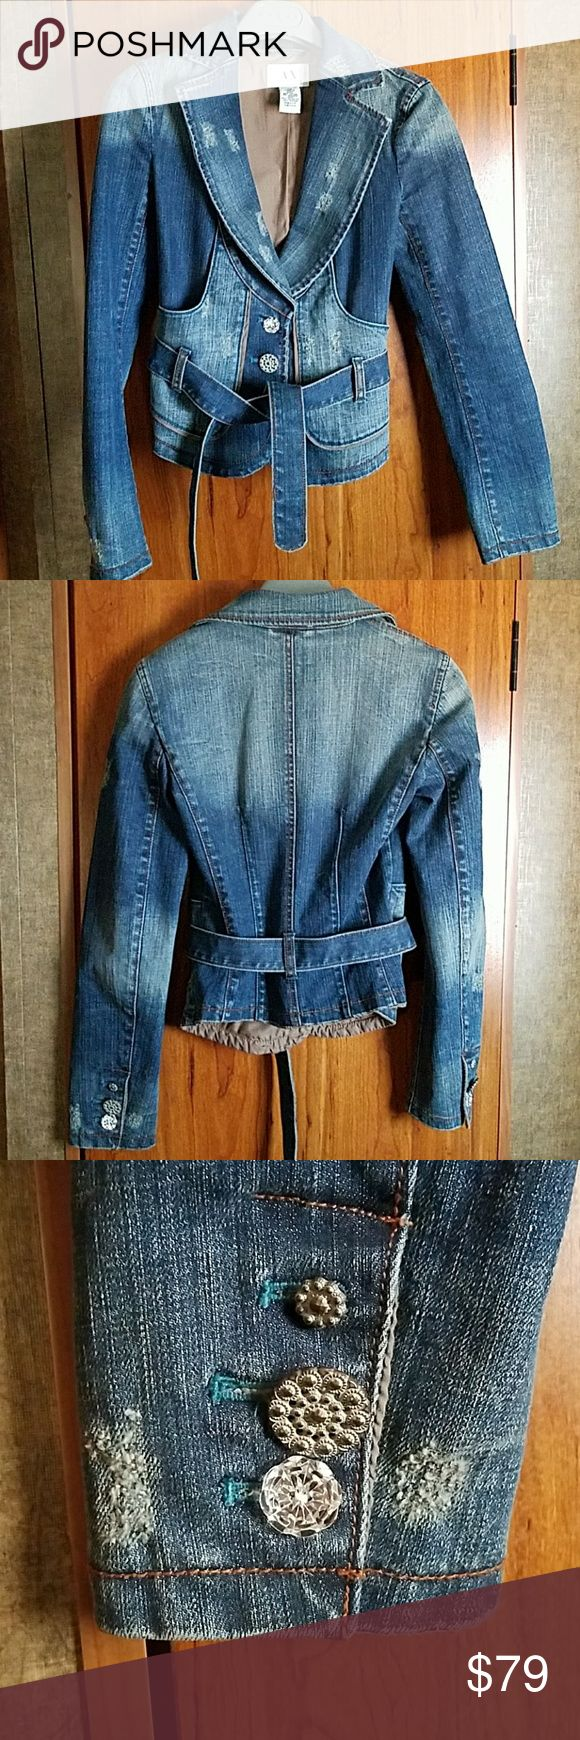 """Armani exchange distressed Jean Jacket SZ XS Authentic Armani Exchange Jean Jacket size XS Pretty buttons - Front has 2 pockets/ 3 button belted  Each Sleeve has 3 buttons/ fully lined  2% Spandex  CHEST: 15"""" flat lay across from arm pit to arm pit  LENGTH: 20"""" SLEEVE: 24"""" LIKE NEW CONDITION!!!! Armani Exchange Jackets & Coats Jean Jackets"""